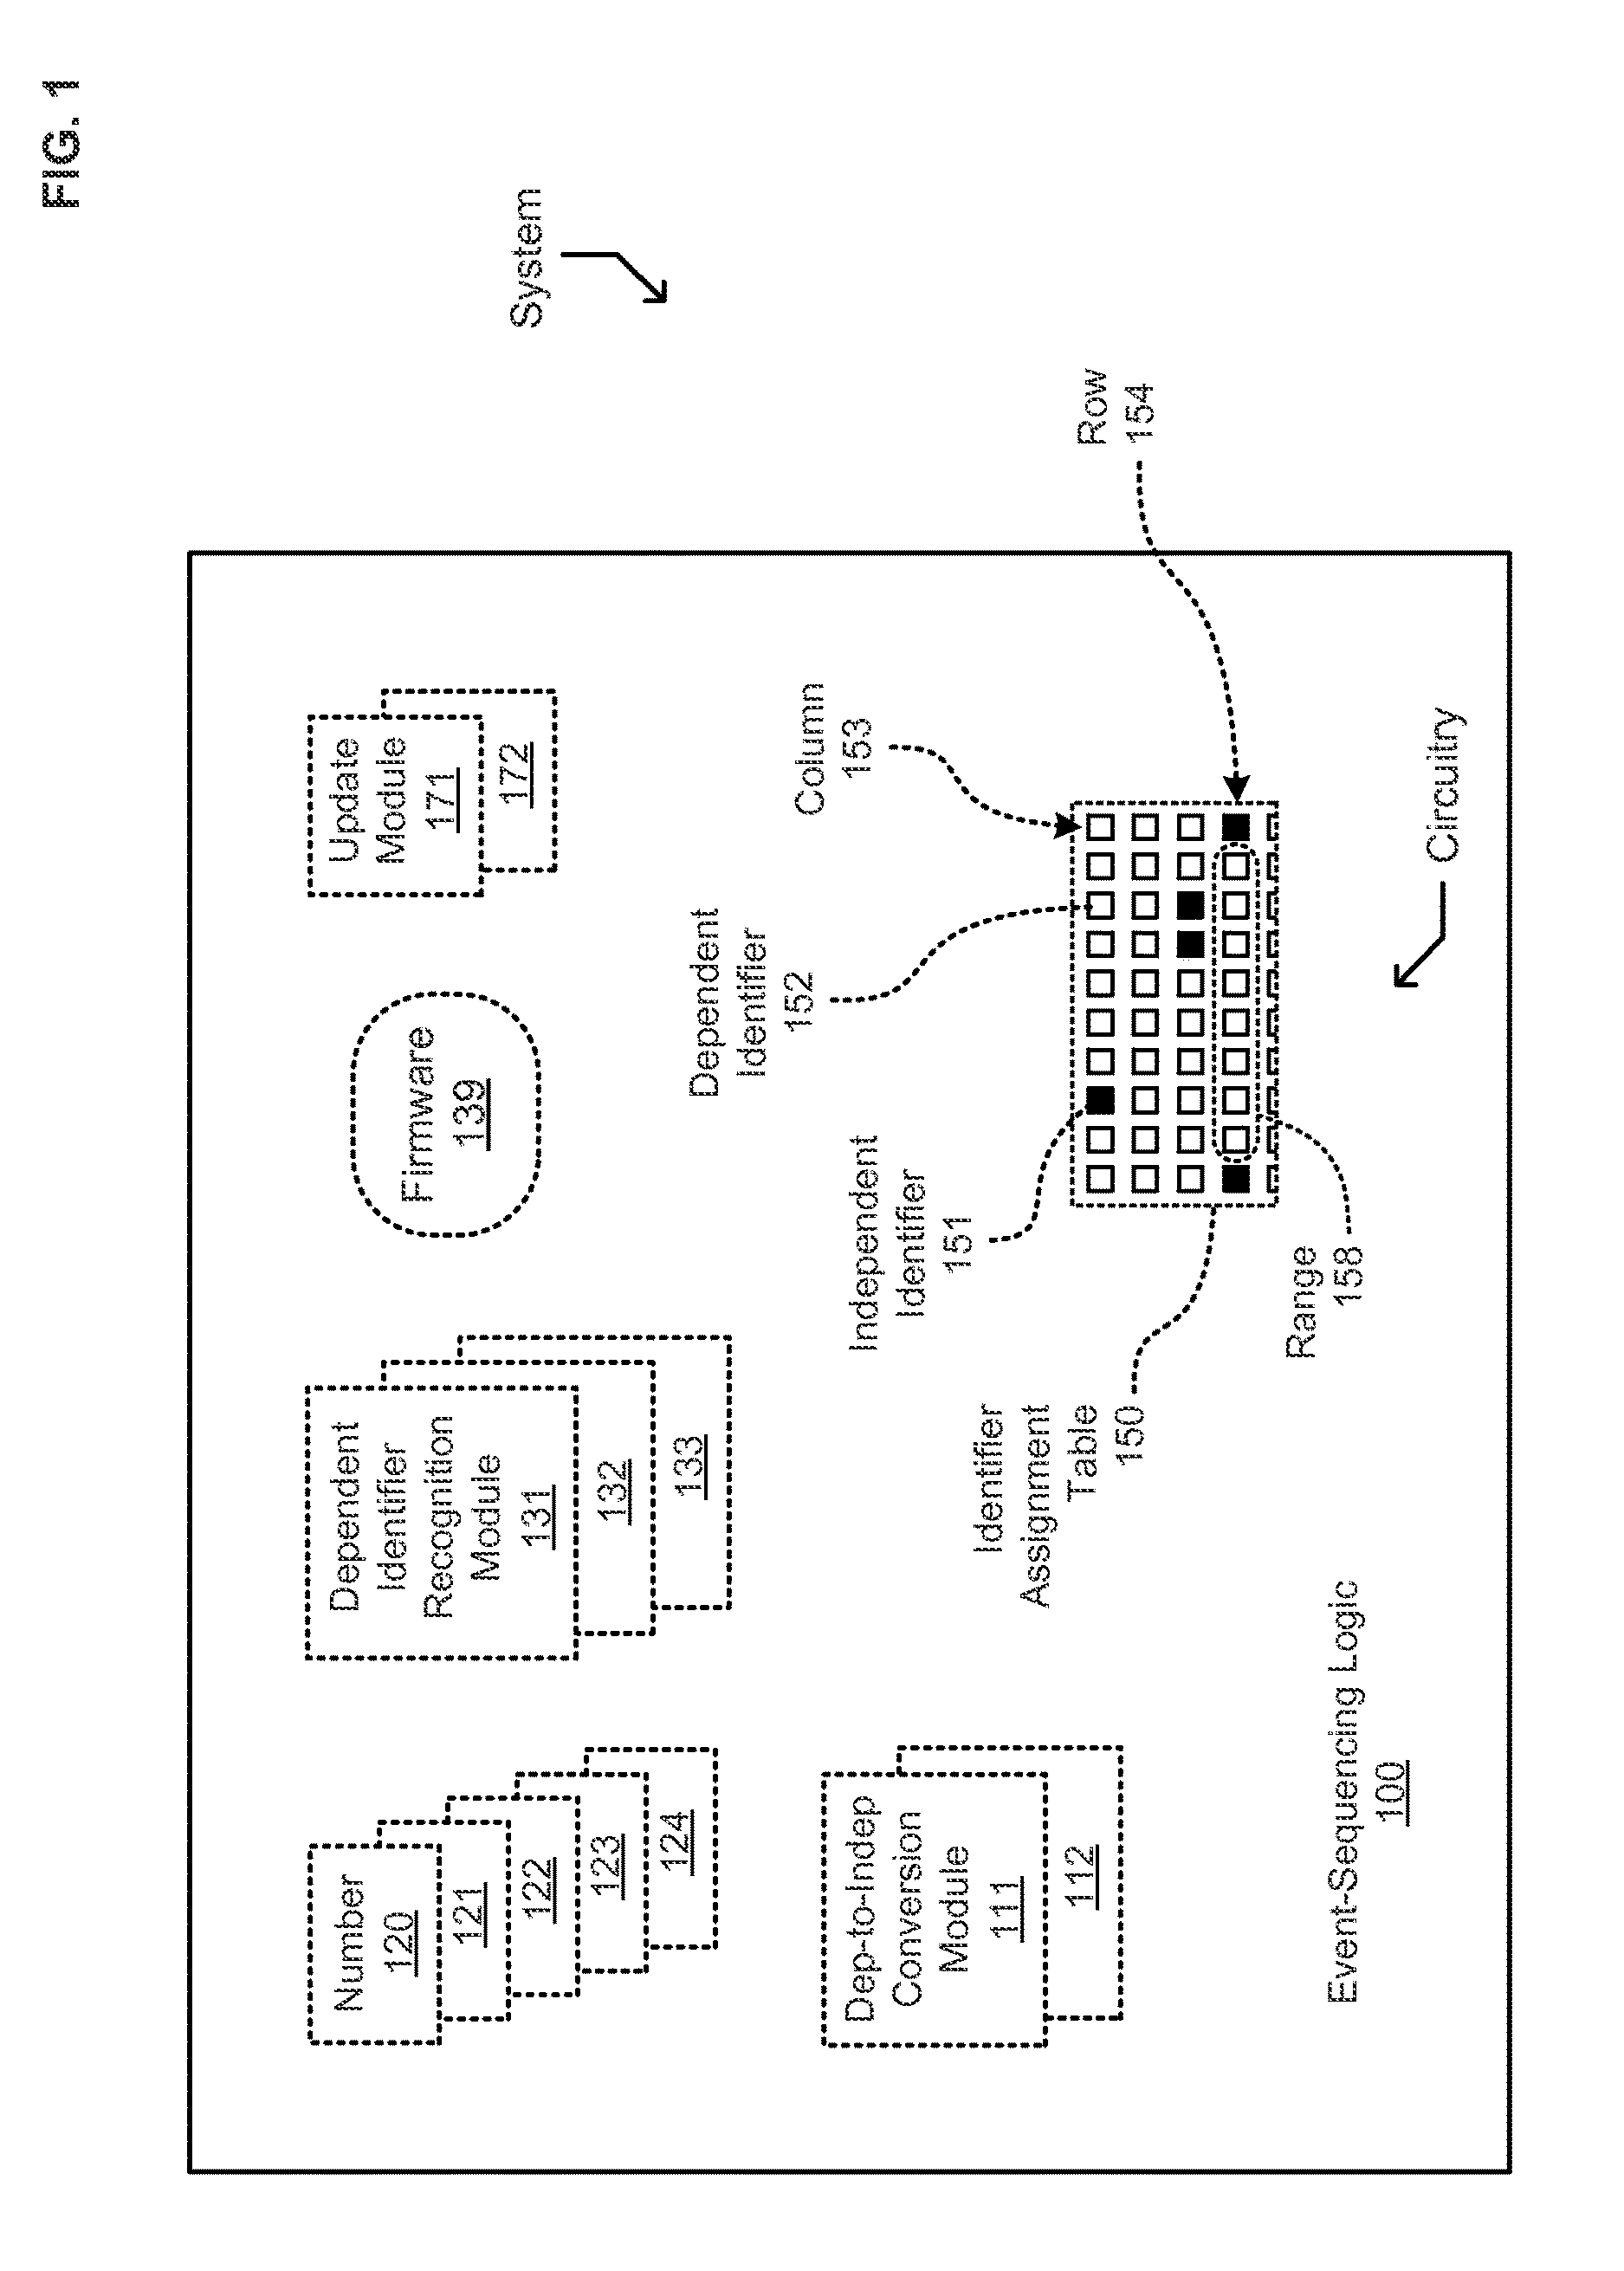 Patent Us 9774728 B2 Circuit Diagram Additionally Rf Transmitter On Untested Images